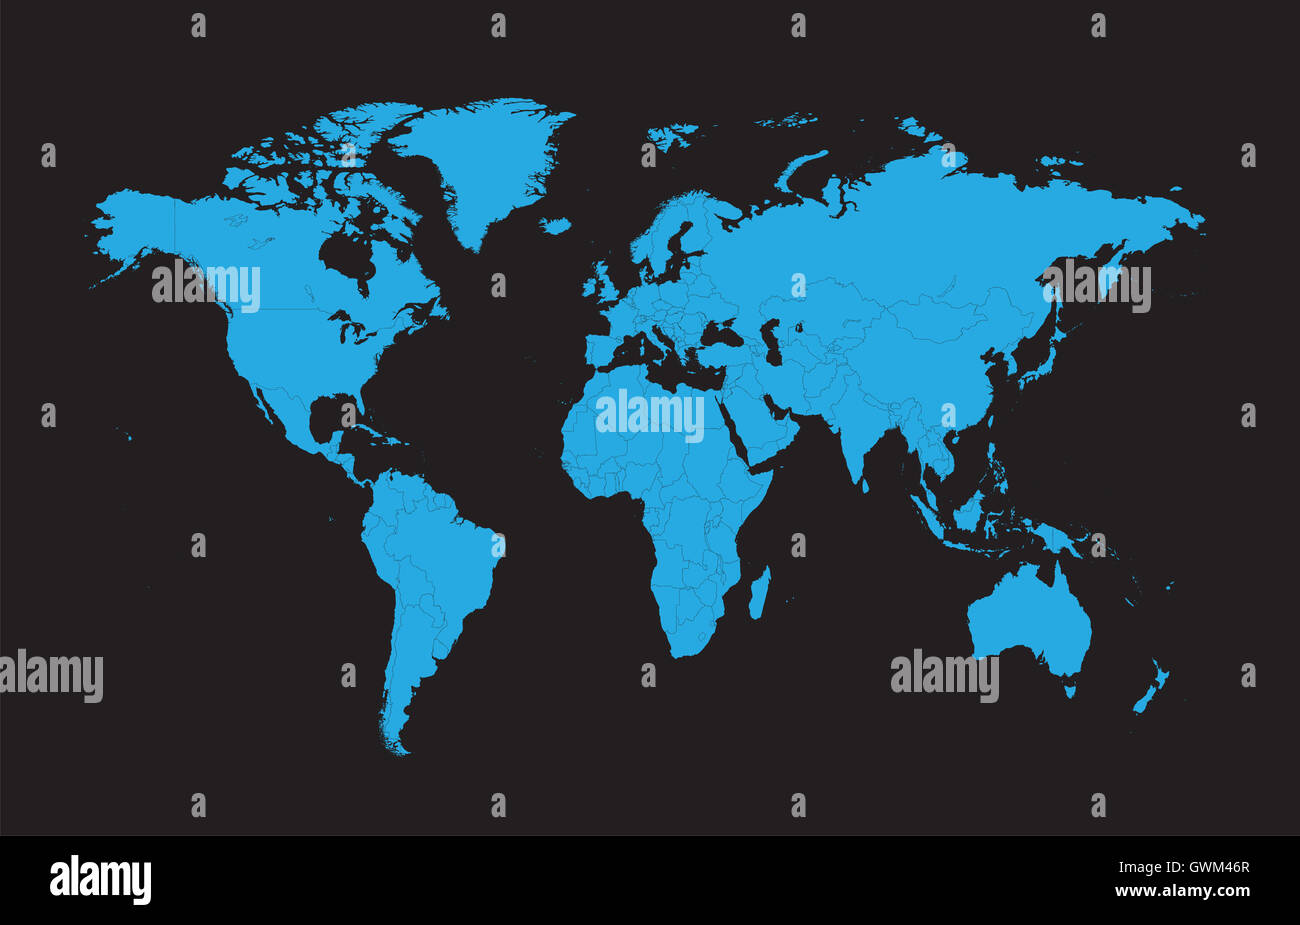 World map vector flat with borders blue color stock photo 119070975 world map vector flat with borders blue color gumiabroncs Choice Image